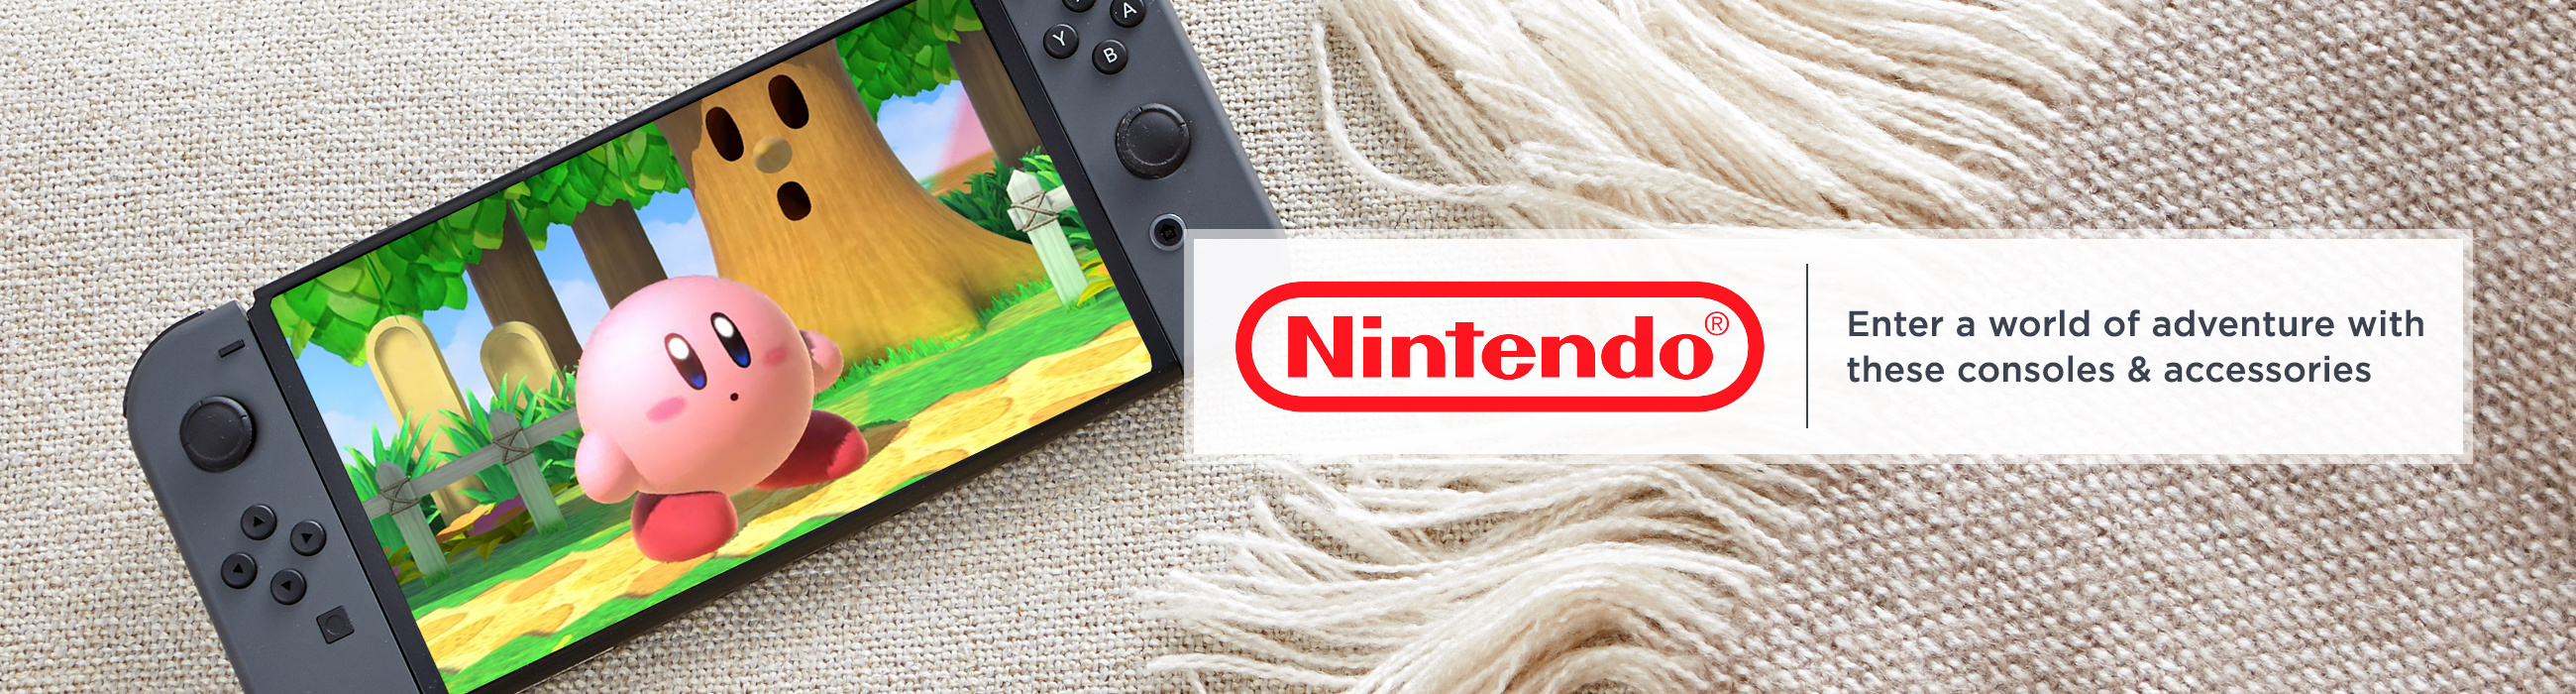 Nintendo Enter a world of adventure with these consoles & accessories